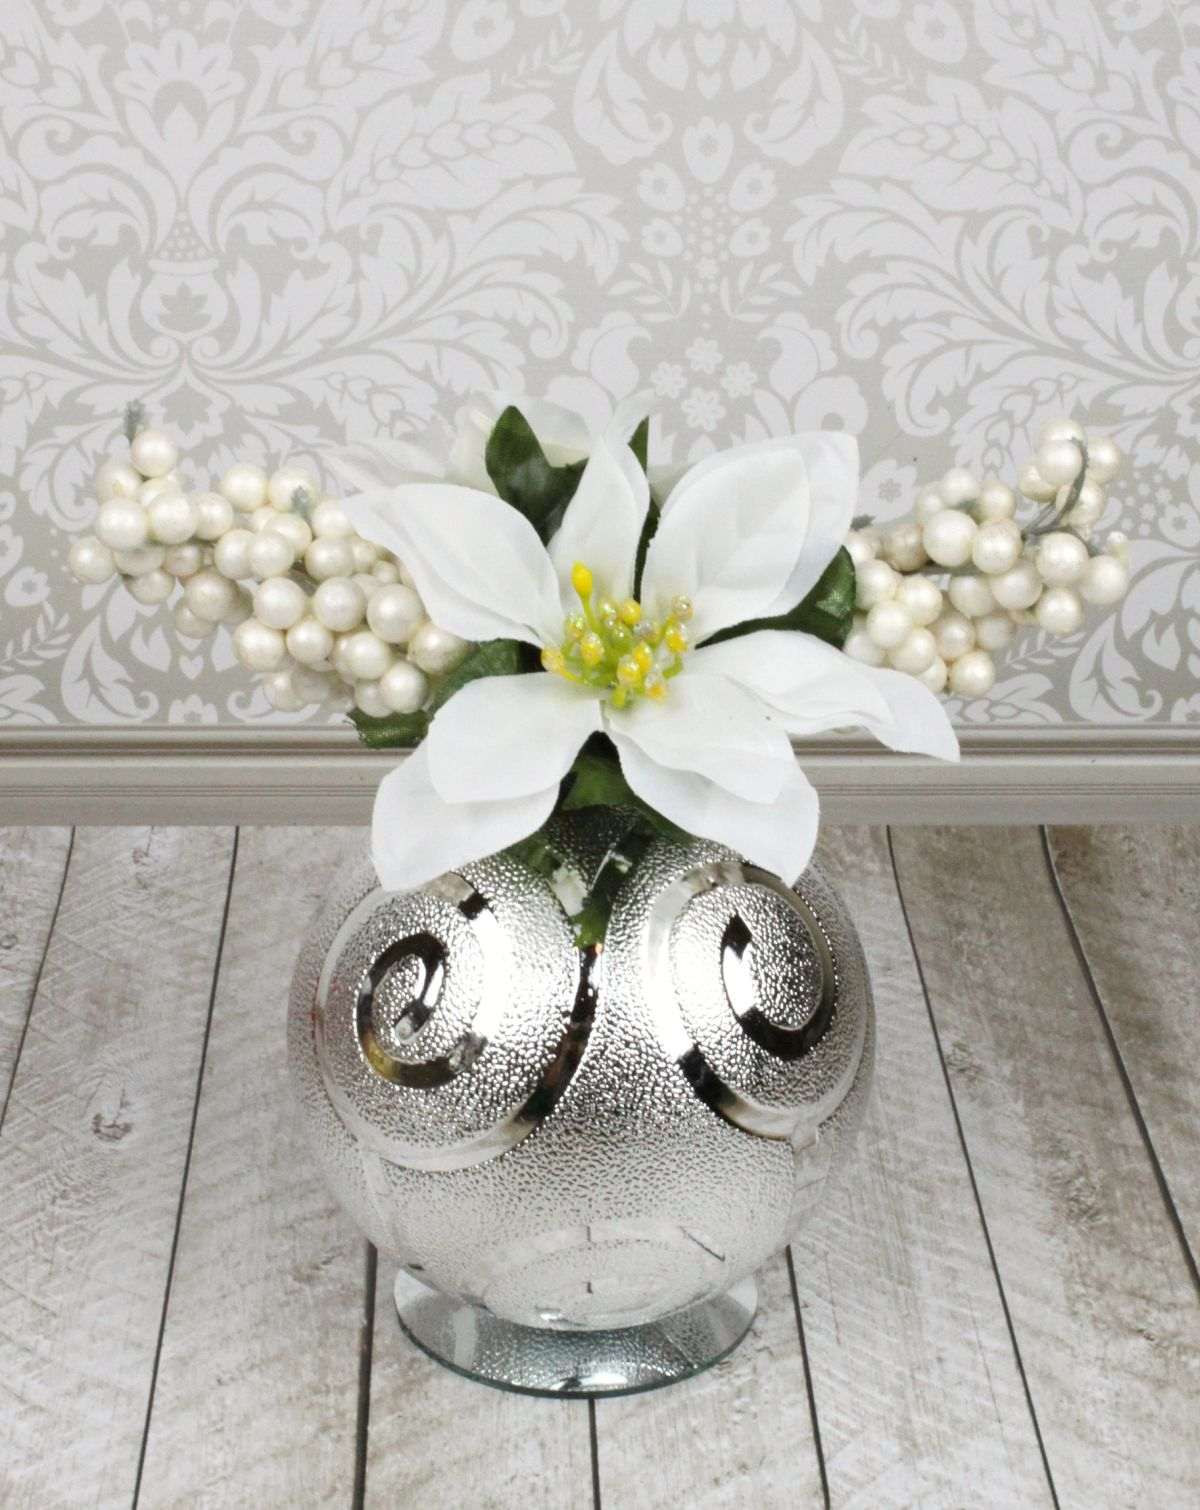 Christmas Ornament Floral Table Decor - silver decor